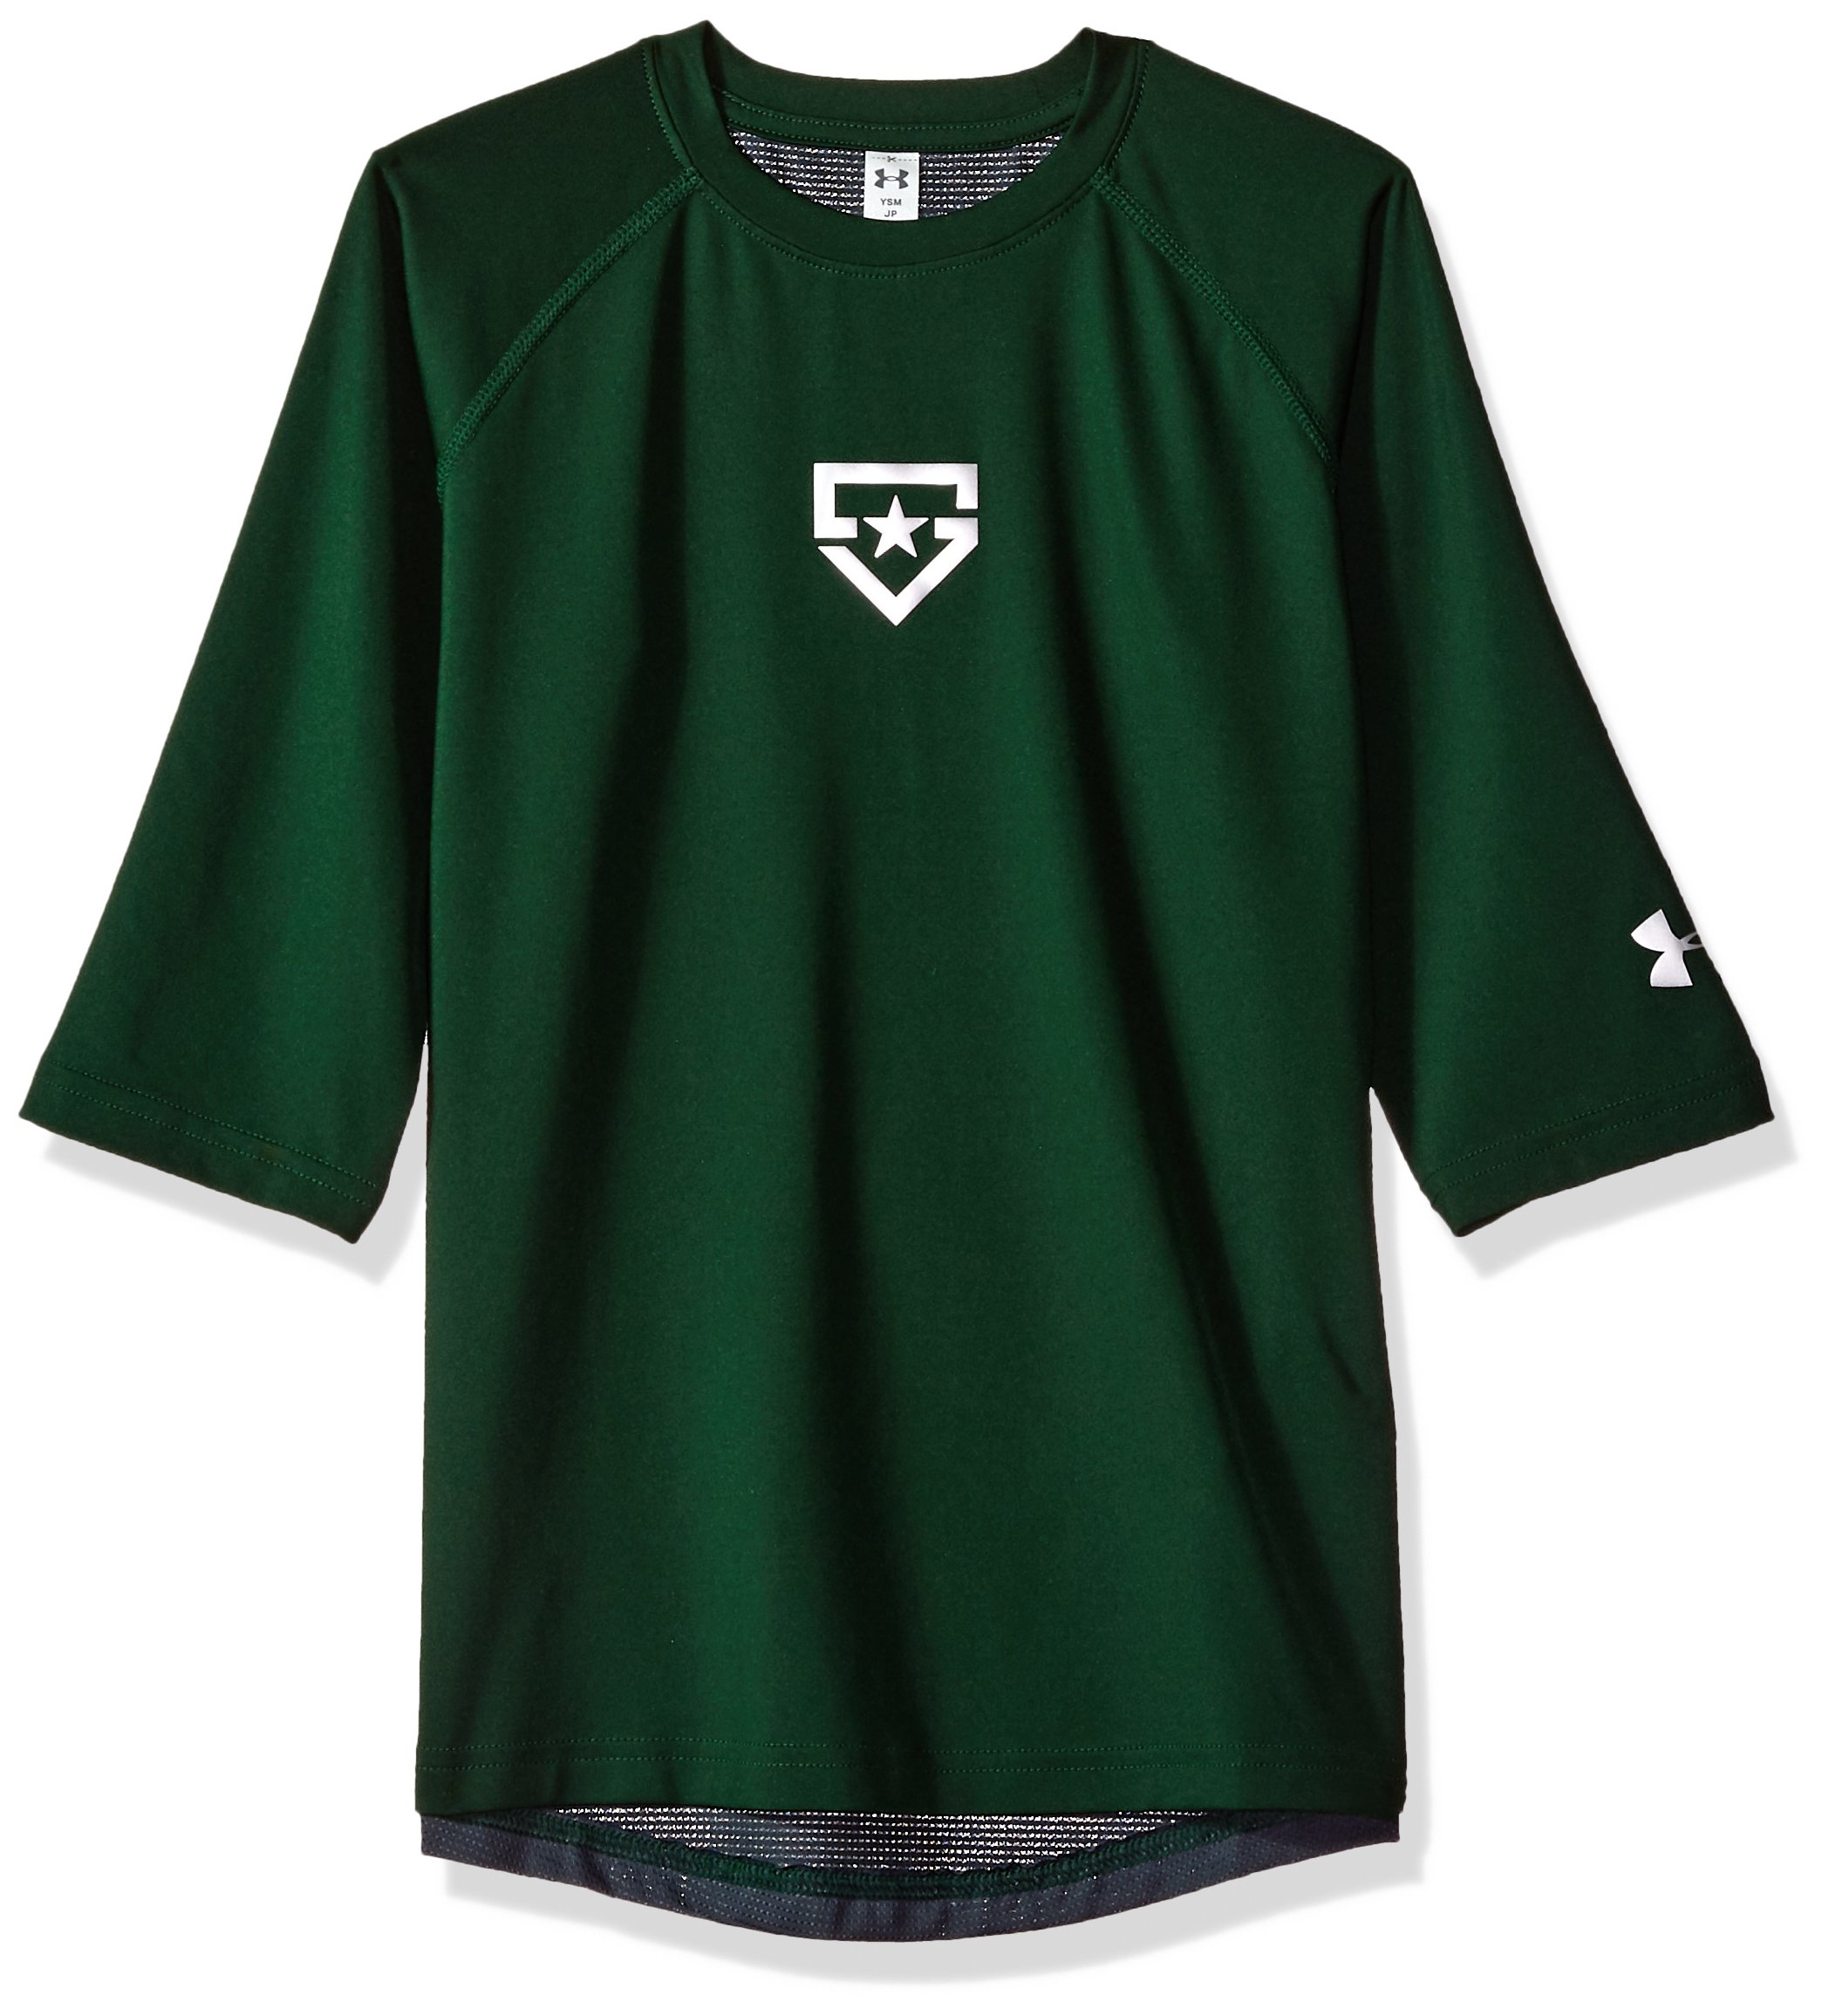 Boy's Under Armour Boys' Heater 3/4 sleeve T-Shirt, Forest Green (301)/Silver, Youth Medium by Under Armour